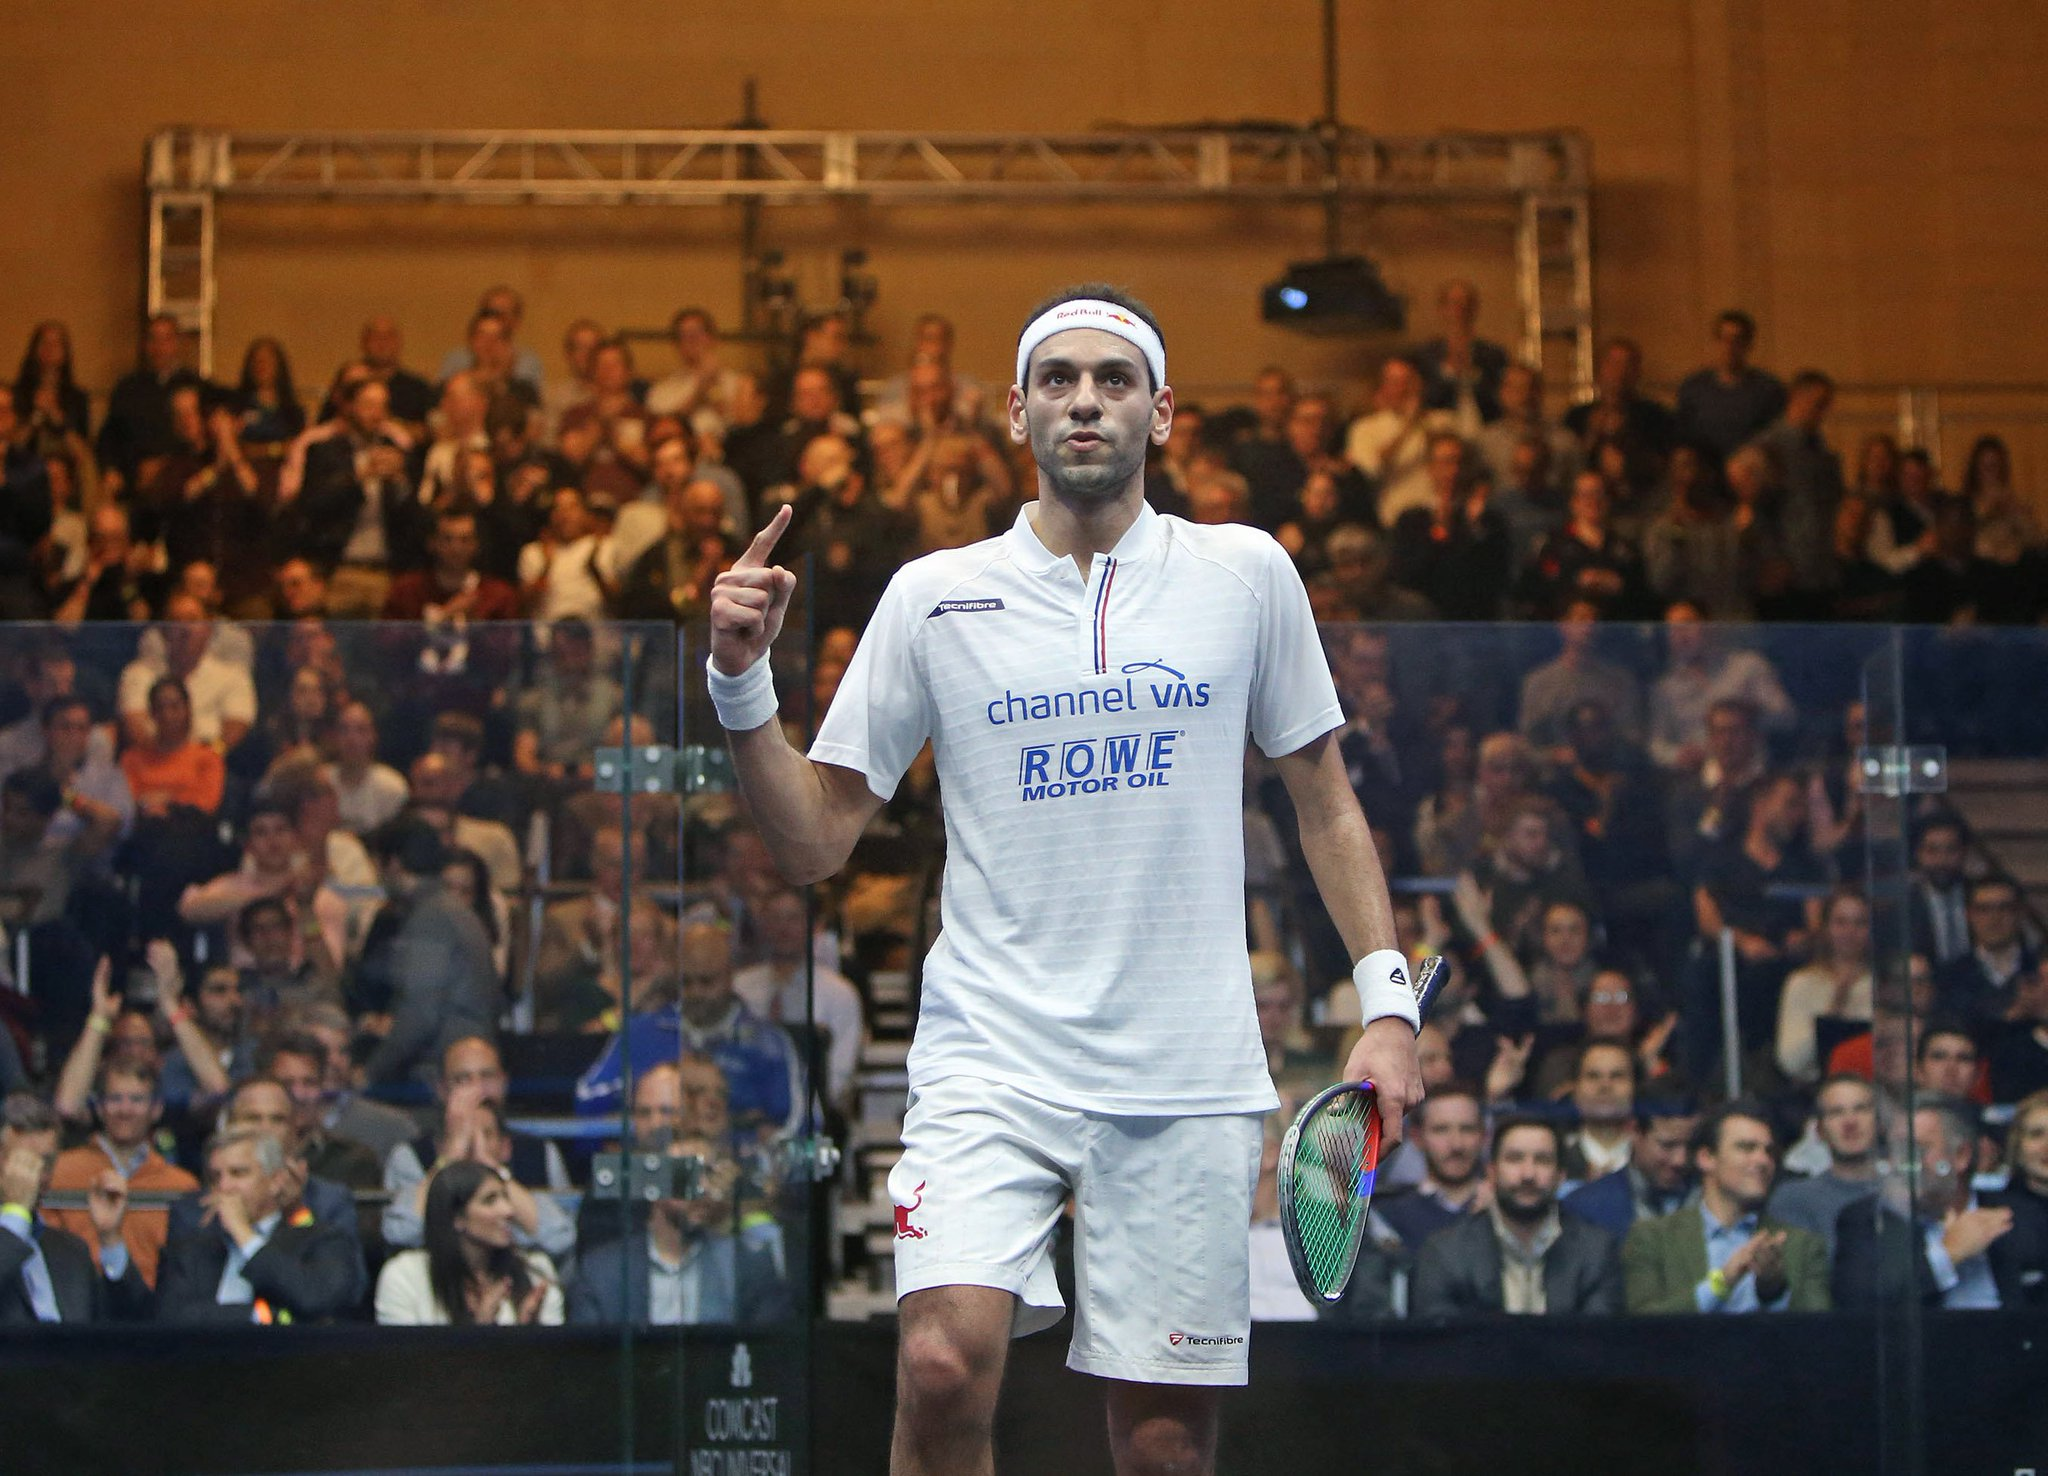 StatAttack: @MoElshorbagy is aiming to win his third @ToCSquash title - The Beast took the trophy in 2015 & 2016   @AliFarag is appearing in his first @ToCSquash final #ToCSquash #ToC19 https://t.co/jJGxNYeukx